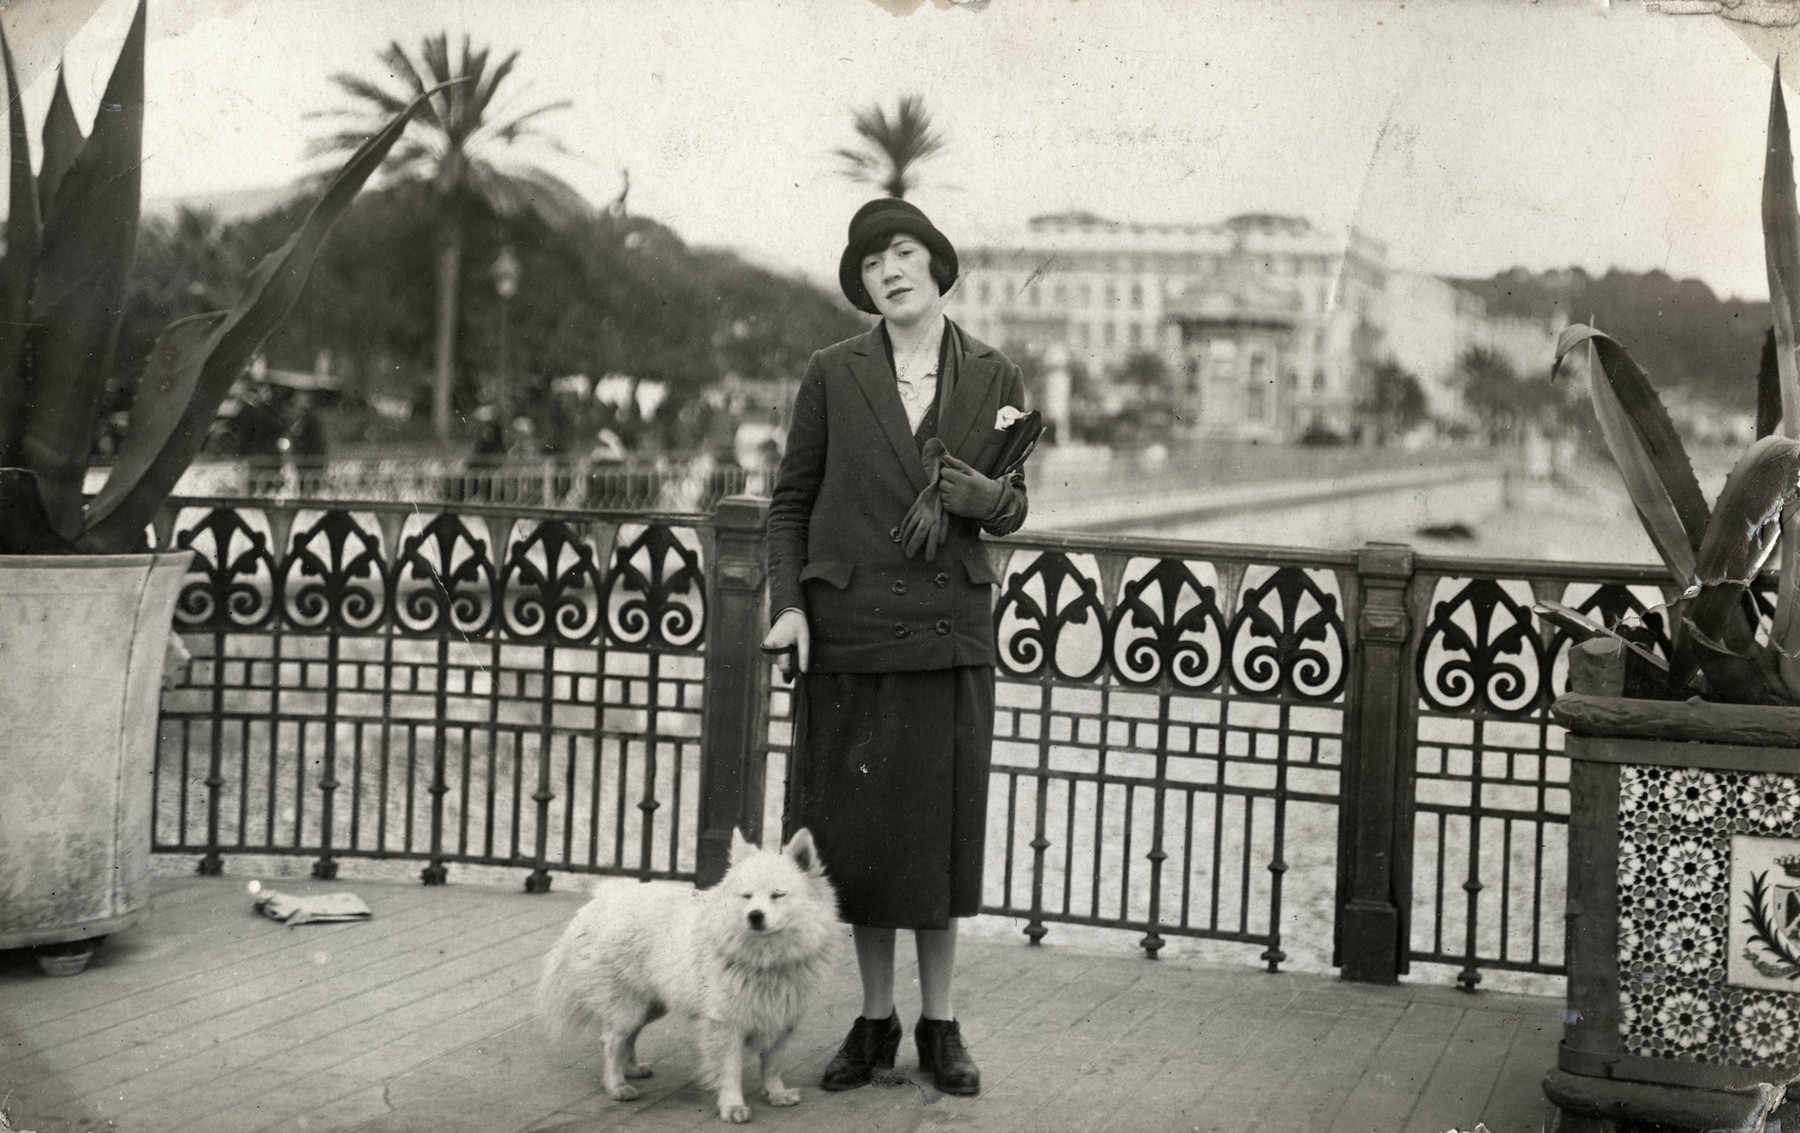 Camille Spira poses on a street in Vichy with a dog.